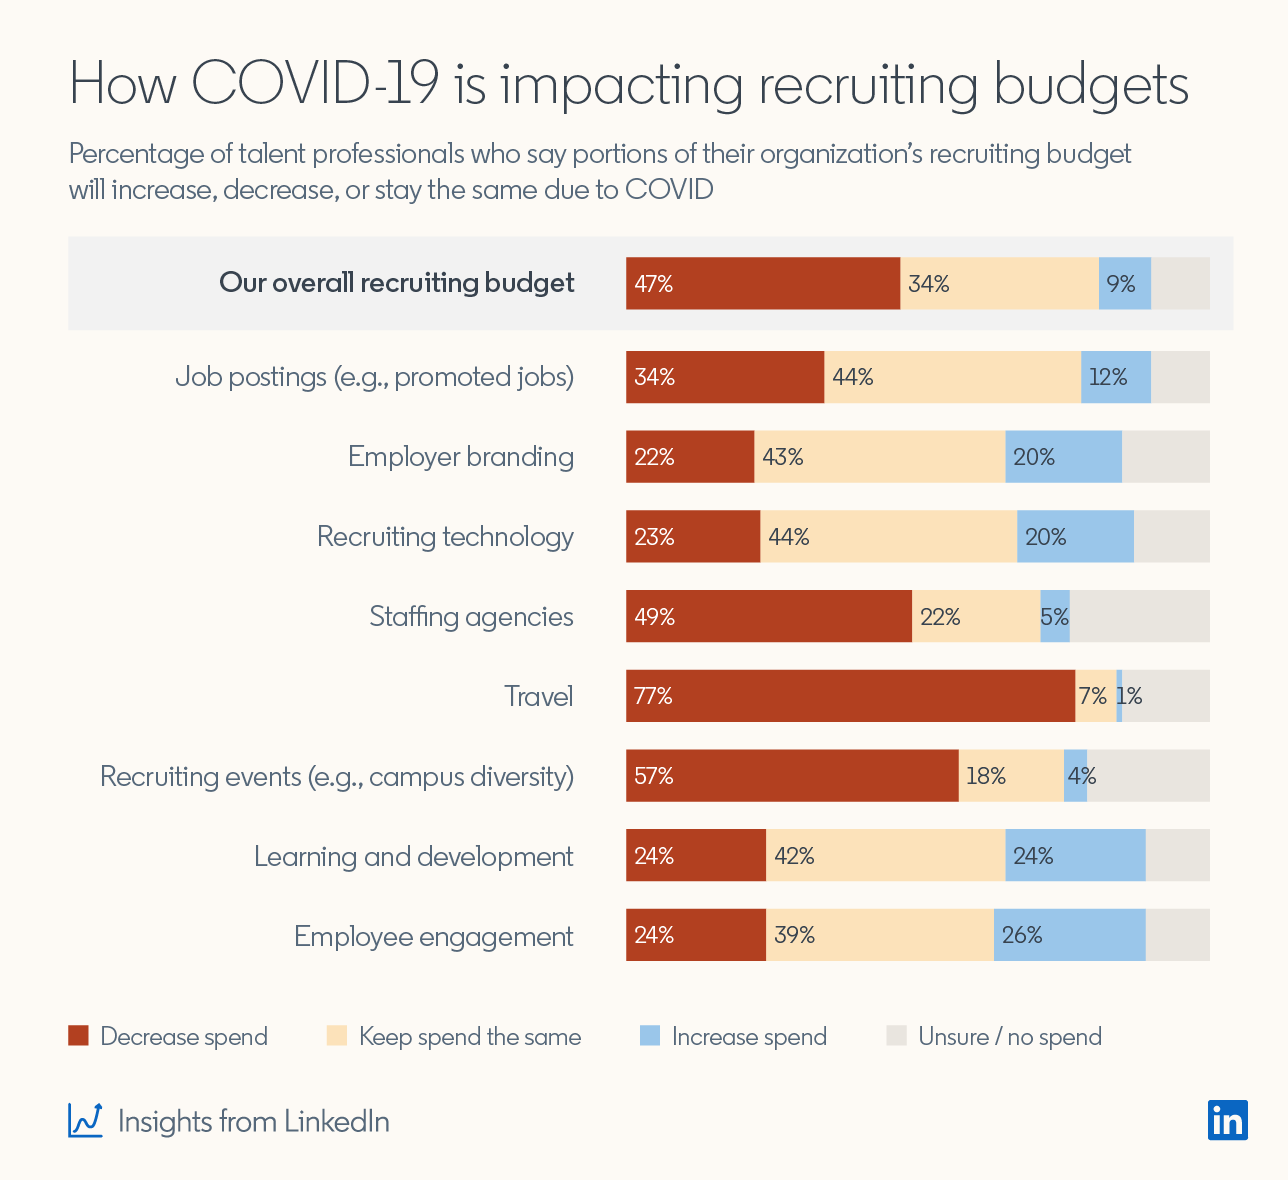 How COVID-19 is impacting recruiting budgets Percentage of talent professionals who say portions of their organization's recruiting budget will increase, decrease, or stay the same due to COVID  Overall recruiting budget: 47% Decrease spend 34% Keep spend the same 9% Increase spend  Job postings (e.g. promoted jobs): 34% Decrease spend 44% Keep spend the same 12% Increase spend  Employer branding: 22% Decrease spend 43% Keep spend the same 20% Increase spend  Recruiting technology: 23% Decrease spend 44% Keep spend the same 20% Increase spend  Staffing agencies: 49% Decrease spend 22% Keep spend the same 5% Increase spend  Travel: 77% Decrease spend 7% Keep spend the same 4% Increase spend  Recruiting events 57% Decrease spend 18% Keep spend the same 4% Increase spend  Learning and development: 24% Decrease spend 42% Keep spend the same 24% Increase spend  Employee engagement: 24% Decrease spend 39% Keep spend the same 26% Increase spend  (Insights from LinkedIn)